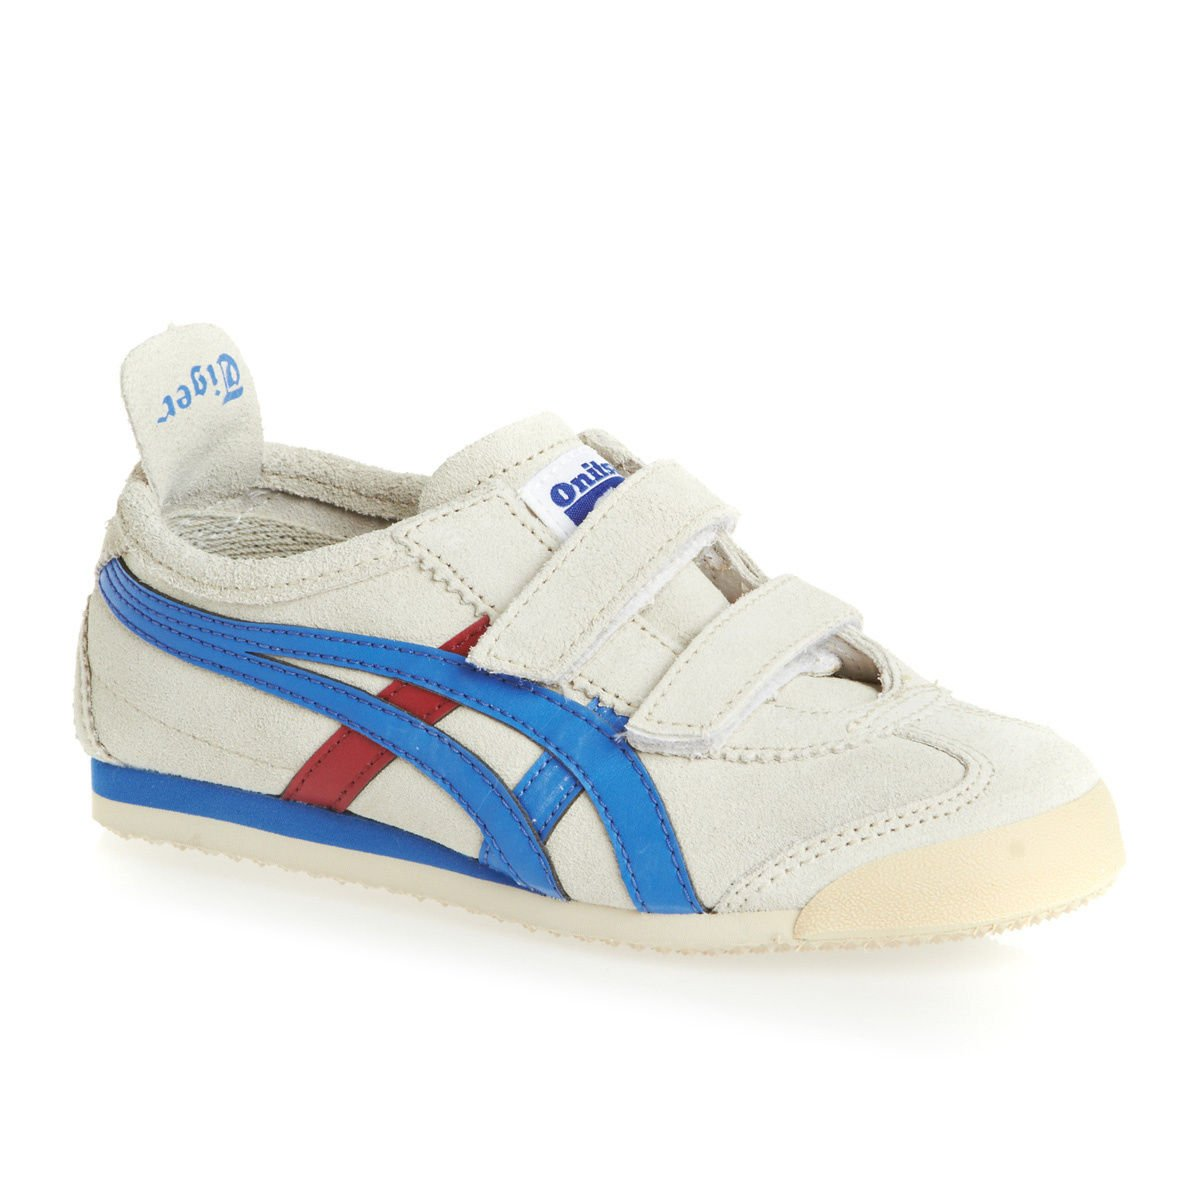 buy online 0c1d0 5a7a9 Onitsuka Tiger Mexico 66 Baja PS shoe White/Blue: Amazon.co ...